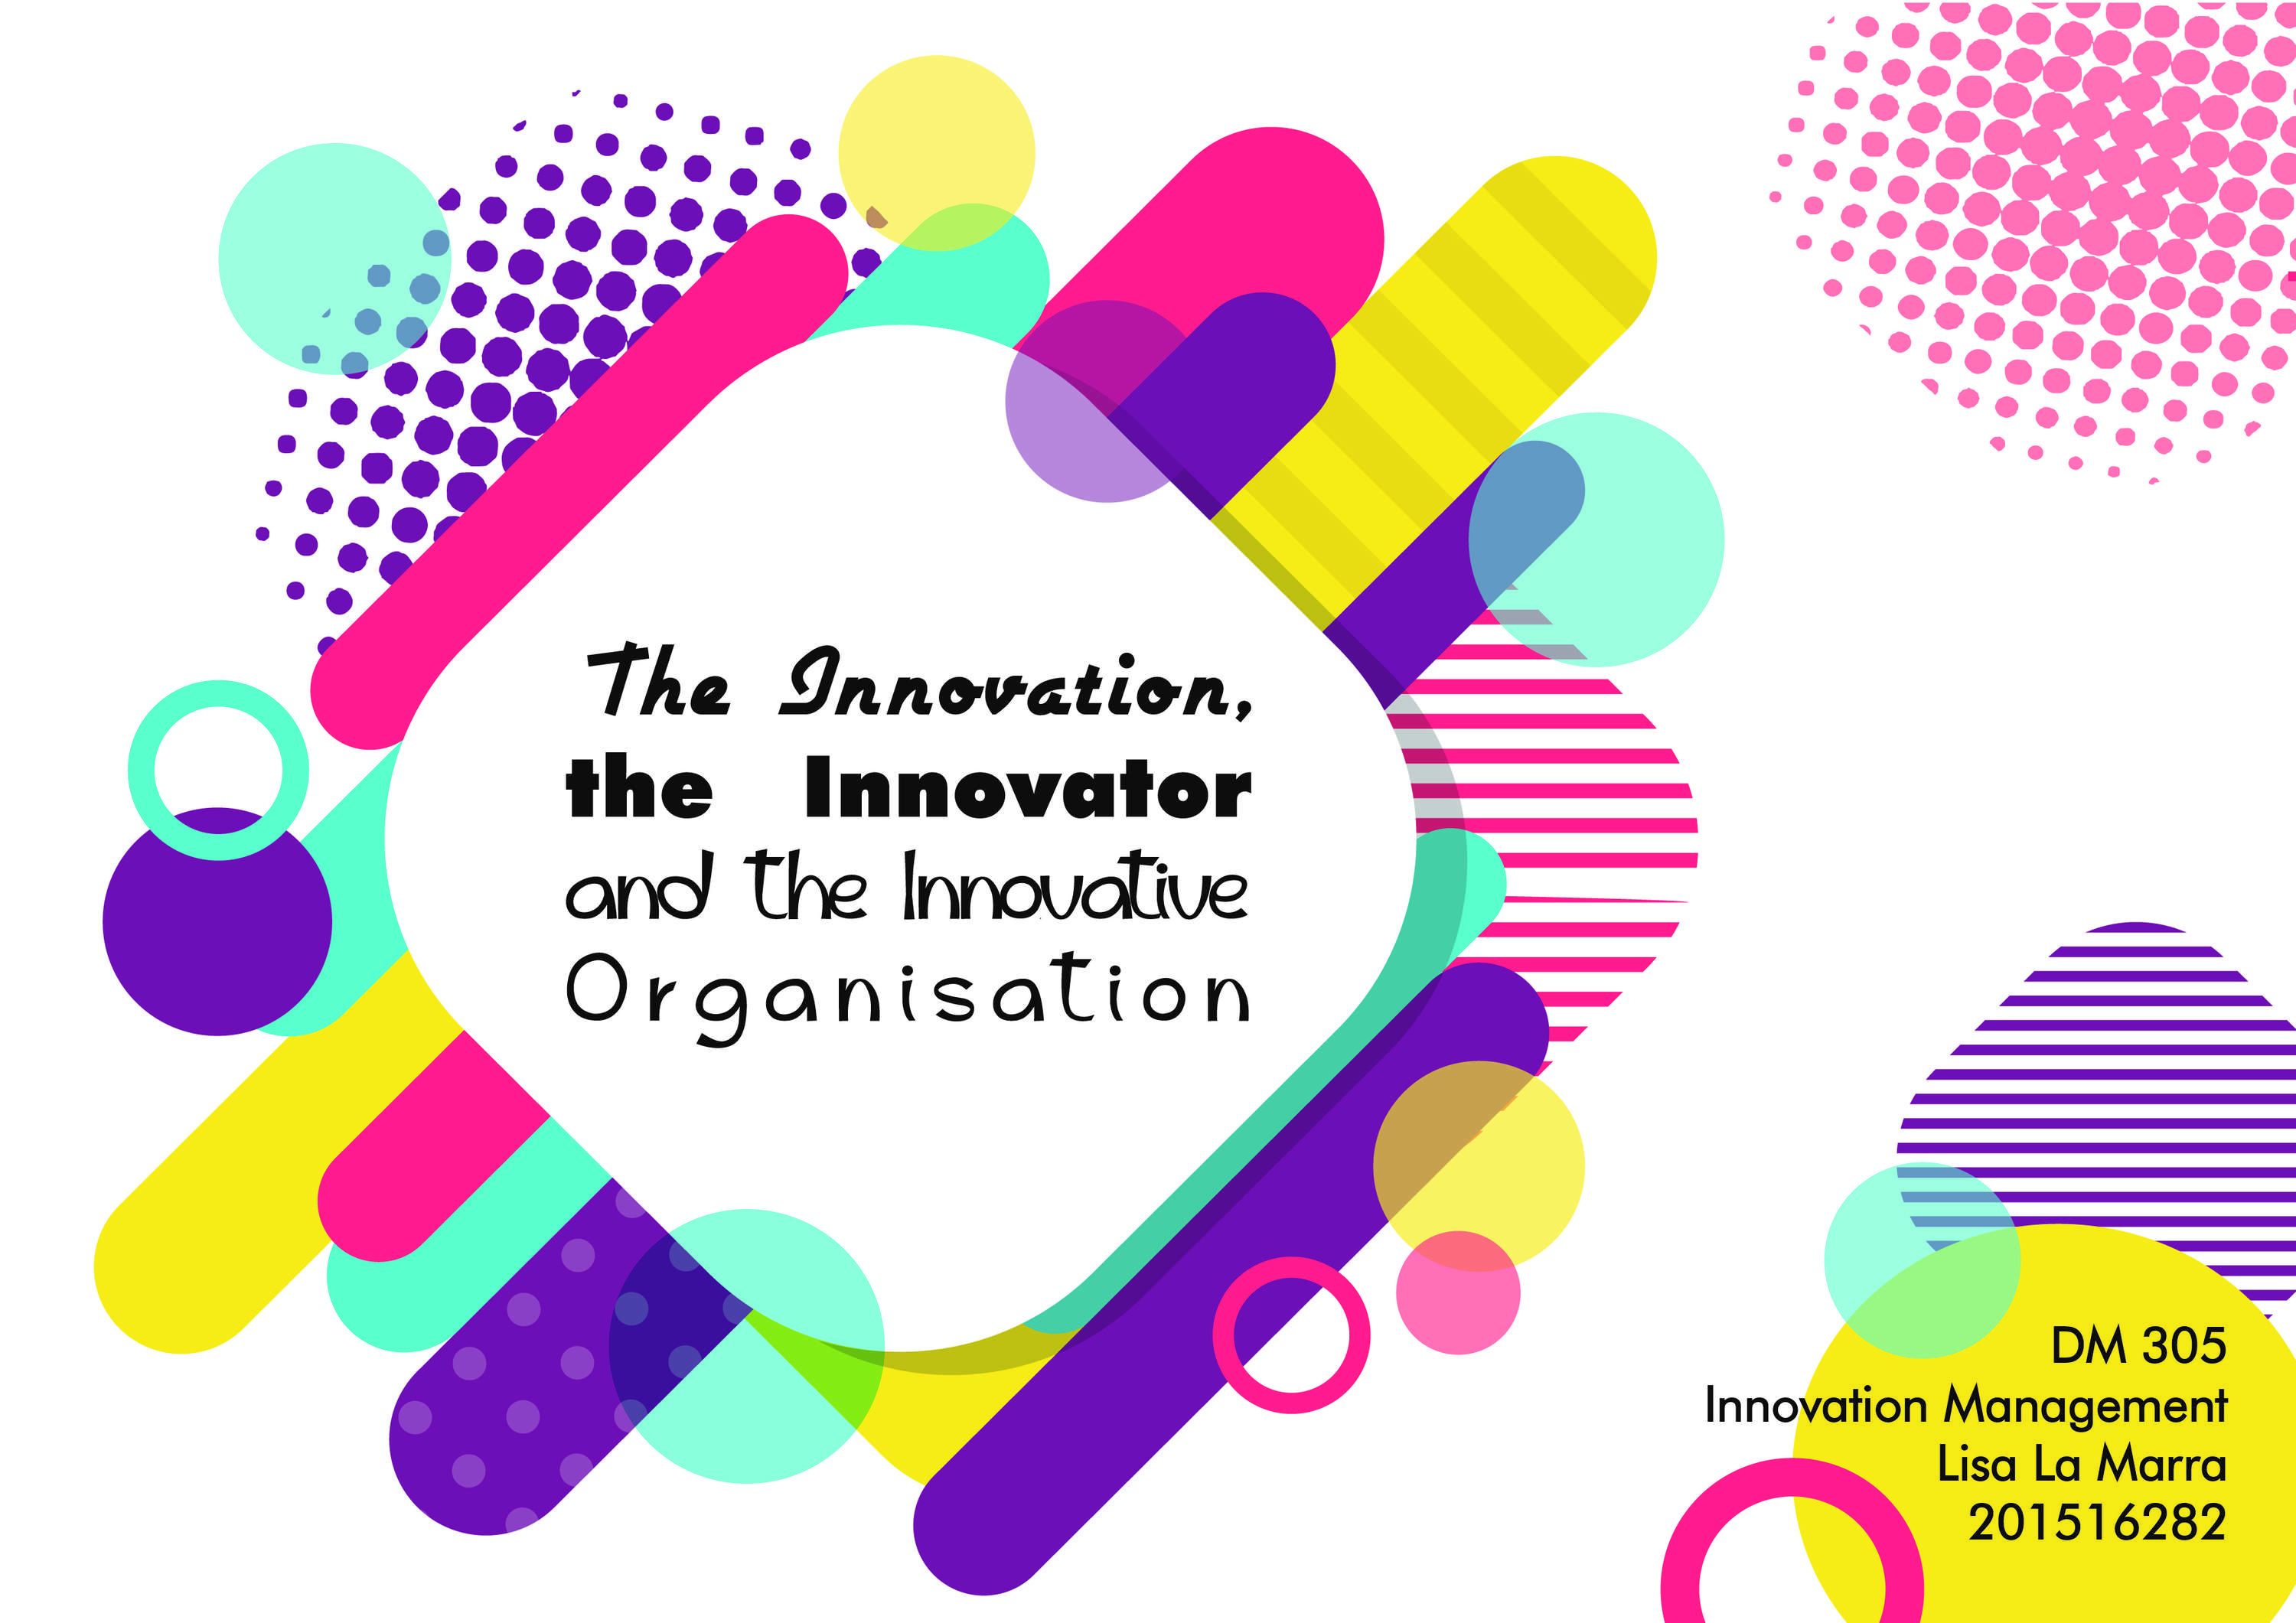 Argument Essay Thesis The Innovation The Innovator And The Innovative Organisation  Graphic  Essay Life After High School Essay also Synthesis Essay Prompt The Innovation The Innovator And The Innovative Organisation  Critical Essay Thesis Statement